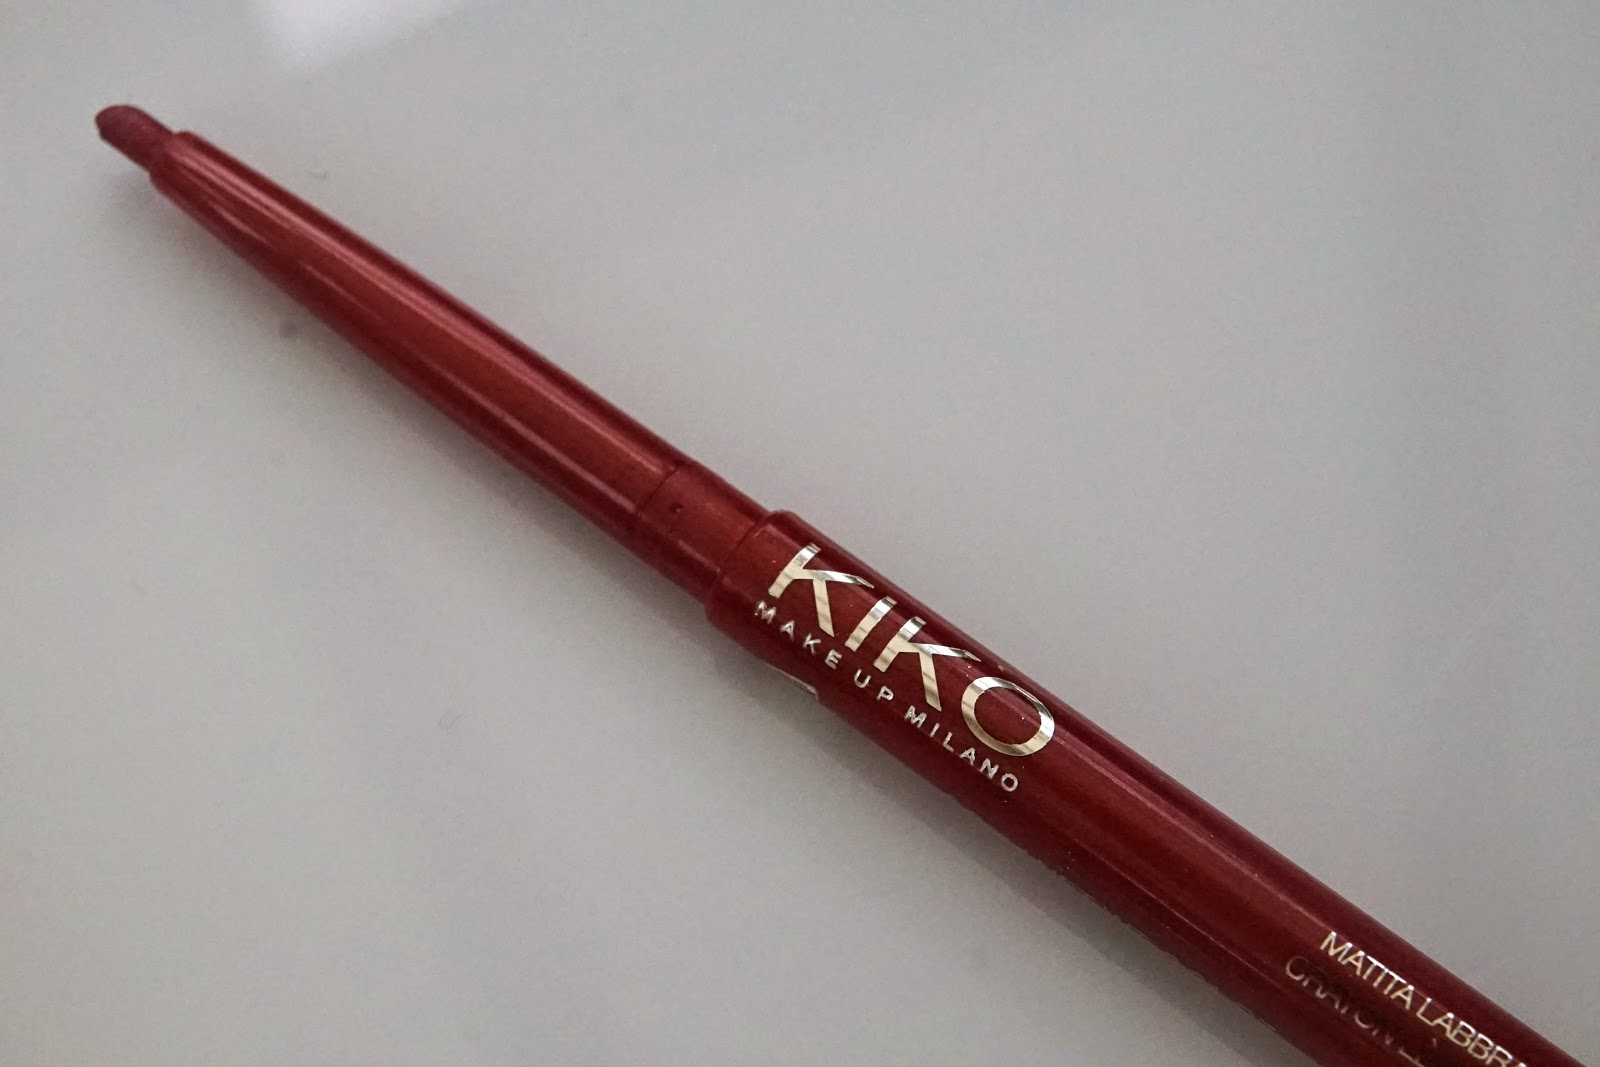 Ace of Diamond Lip Pencil Kiko